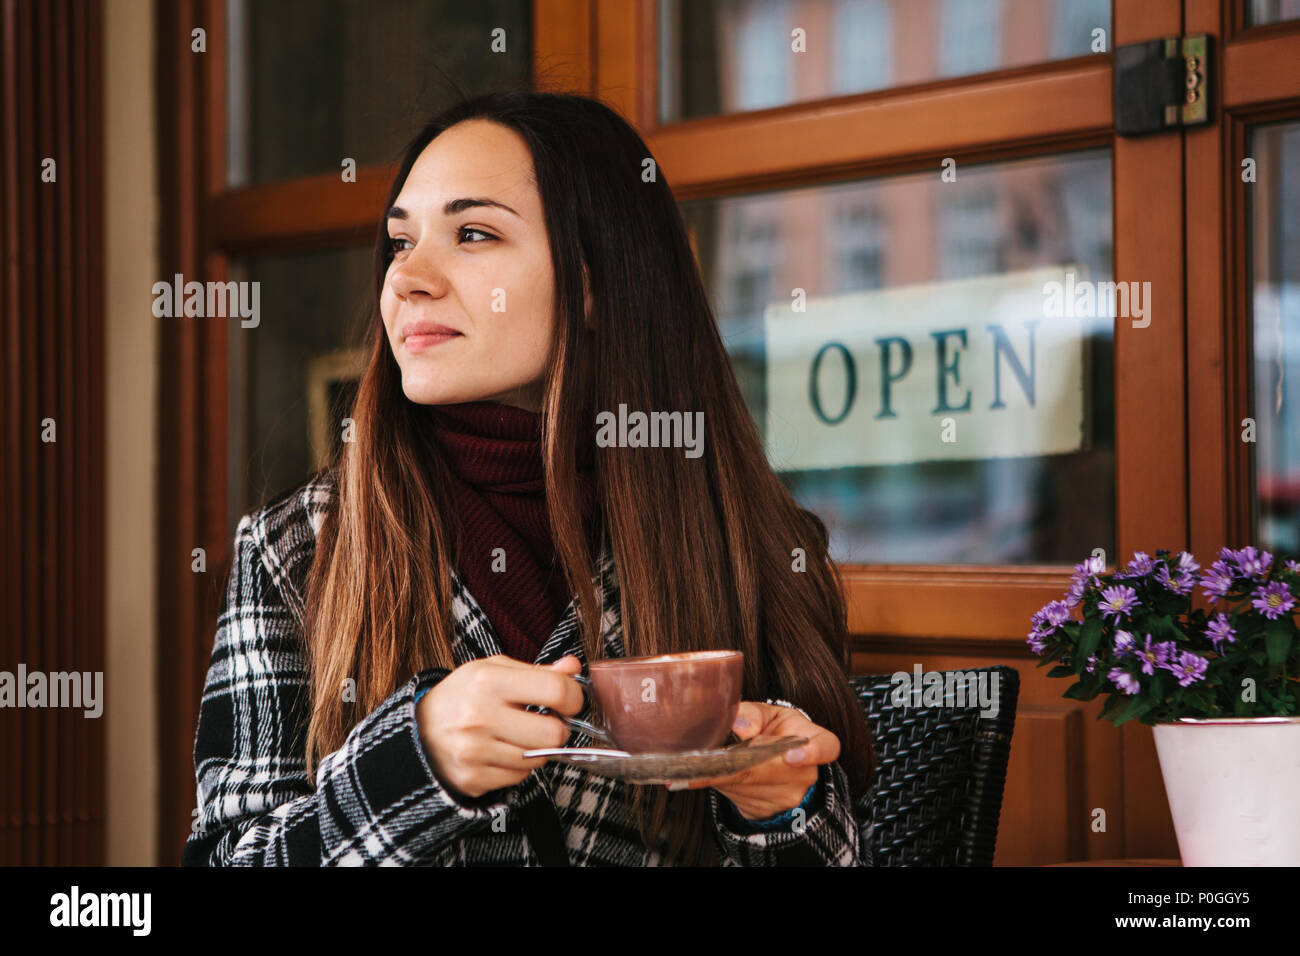 Young beautiful girl drinks coffee or hot chocolate in a street cafe - Stock Image